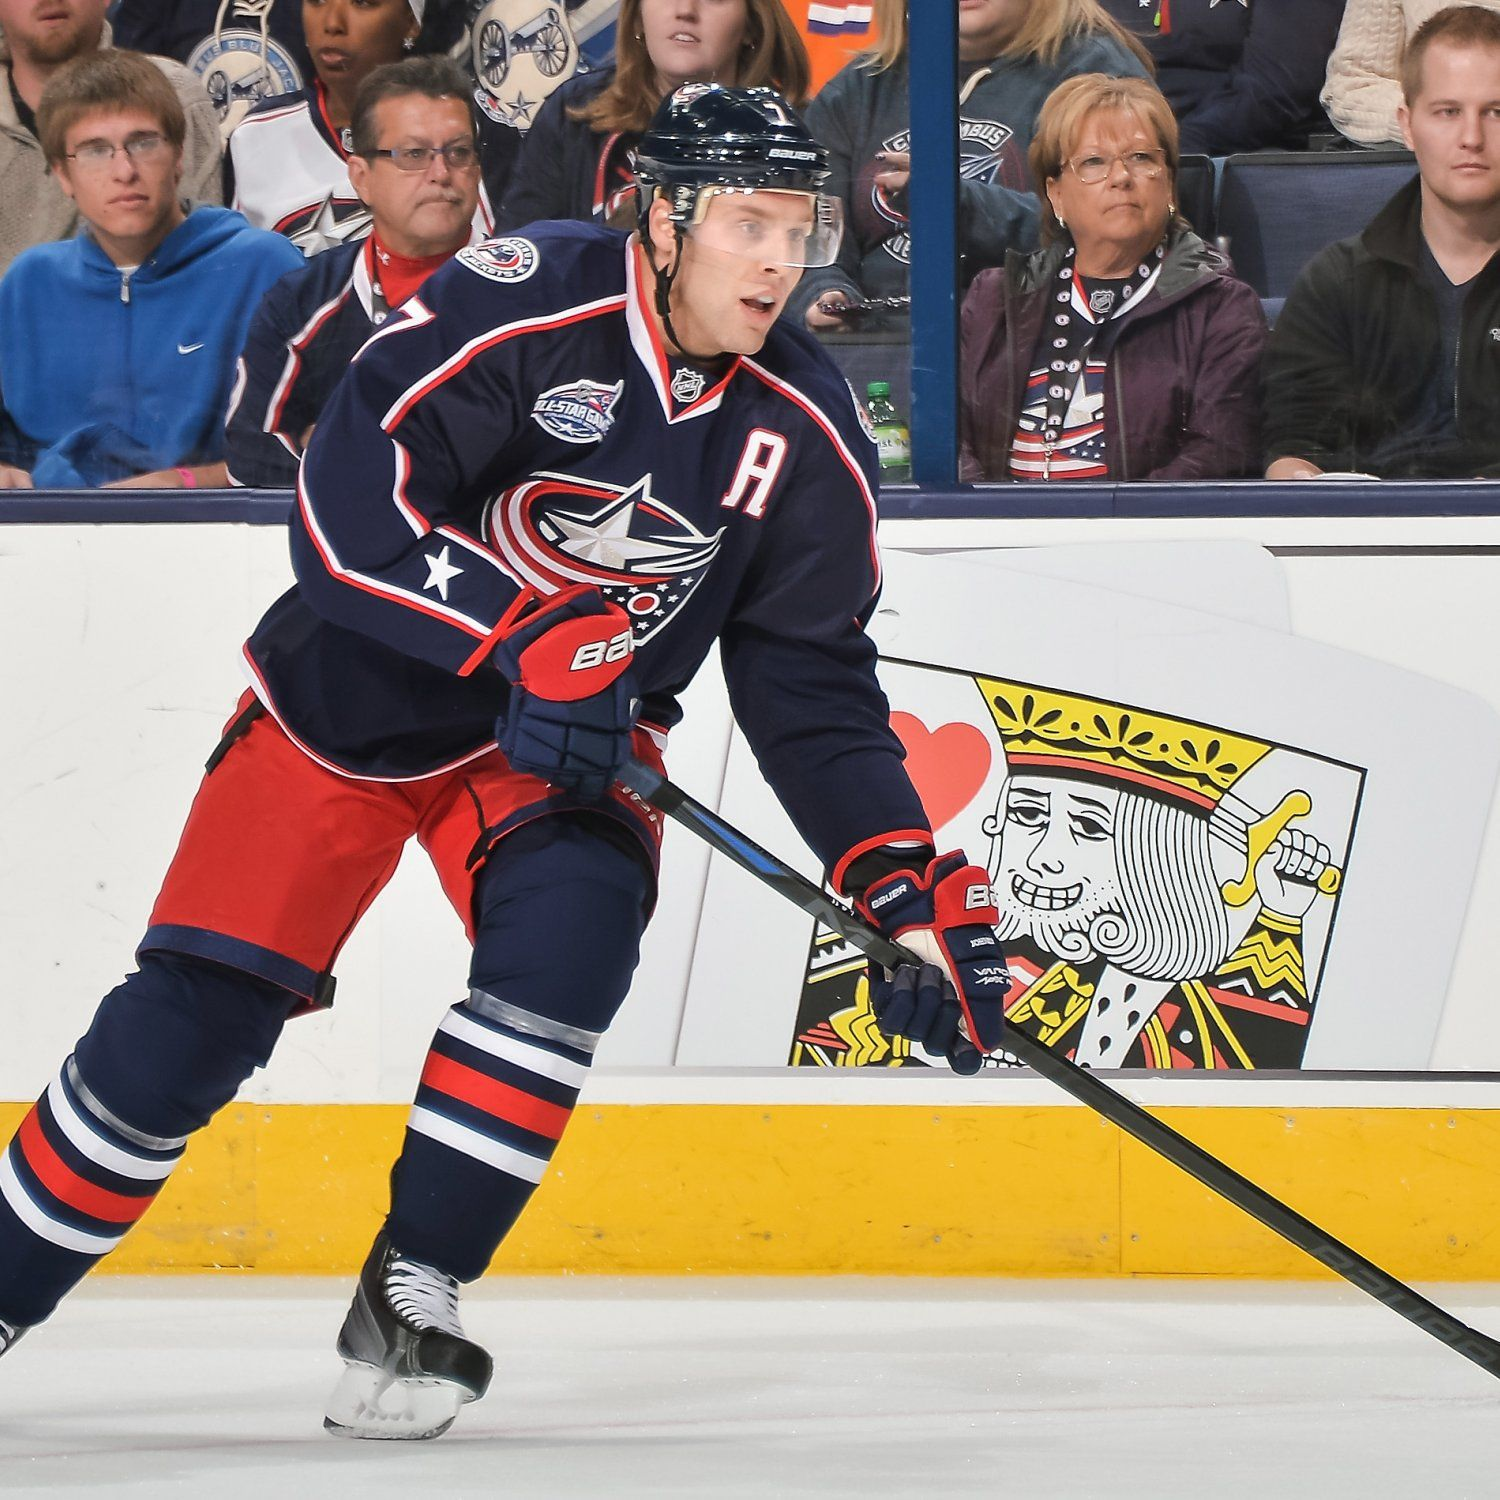 Jack Johnson, NHL hockey player for the Columbus Blue Jackets, files for bankruptcy. Does this surprise you?